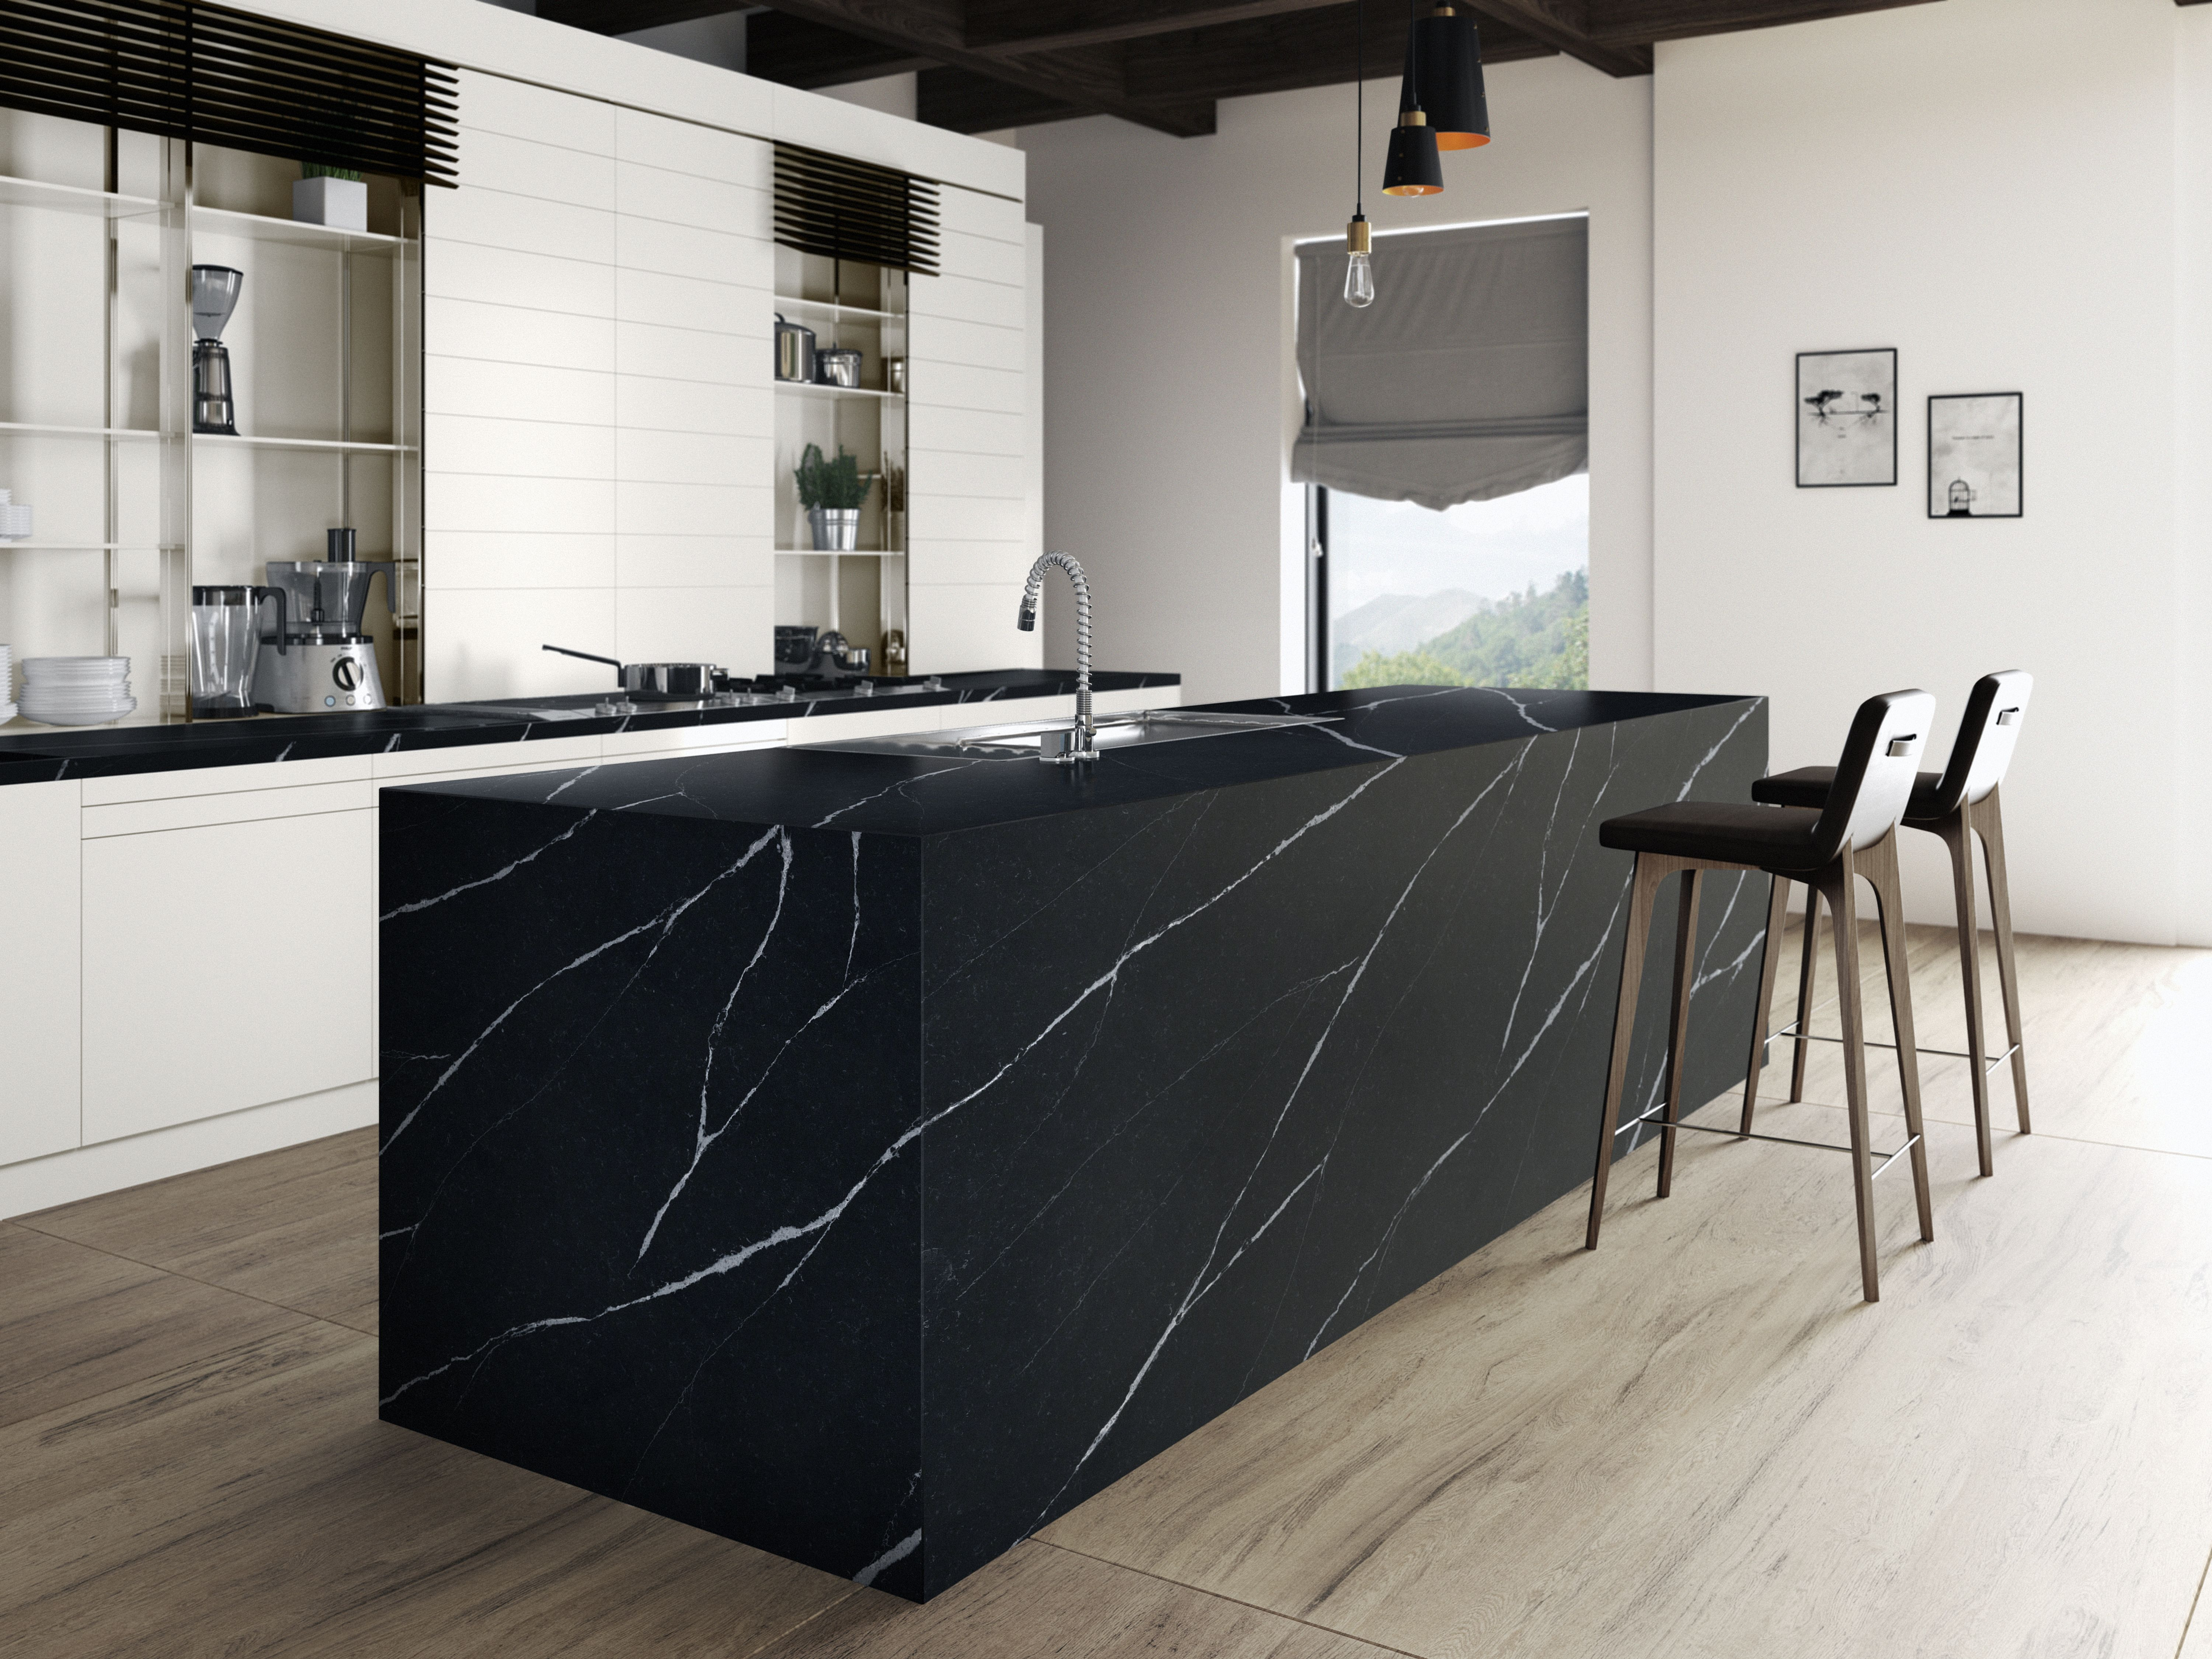 eternal marquina is a silestone quartz that is available in suede and polish finish in these pi on kitchen decor black countertop id=74797